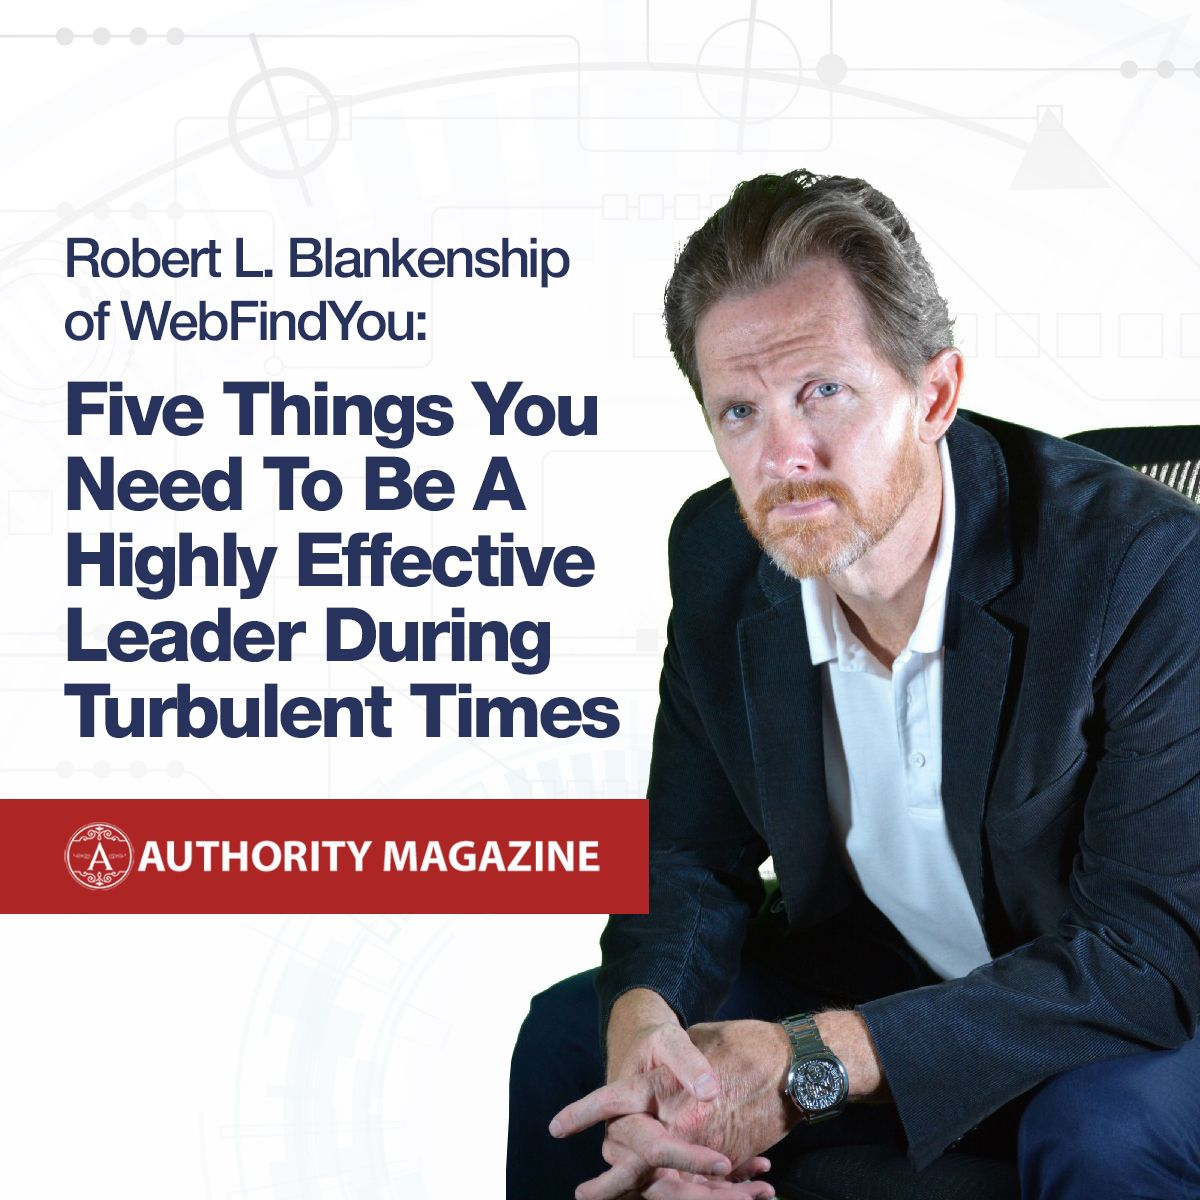 Five Things You Need To Be A Highly Effective Leader During Turbulent Times